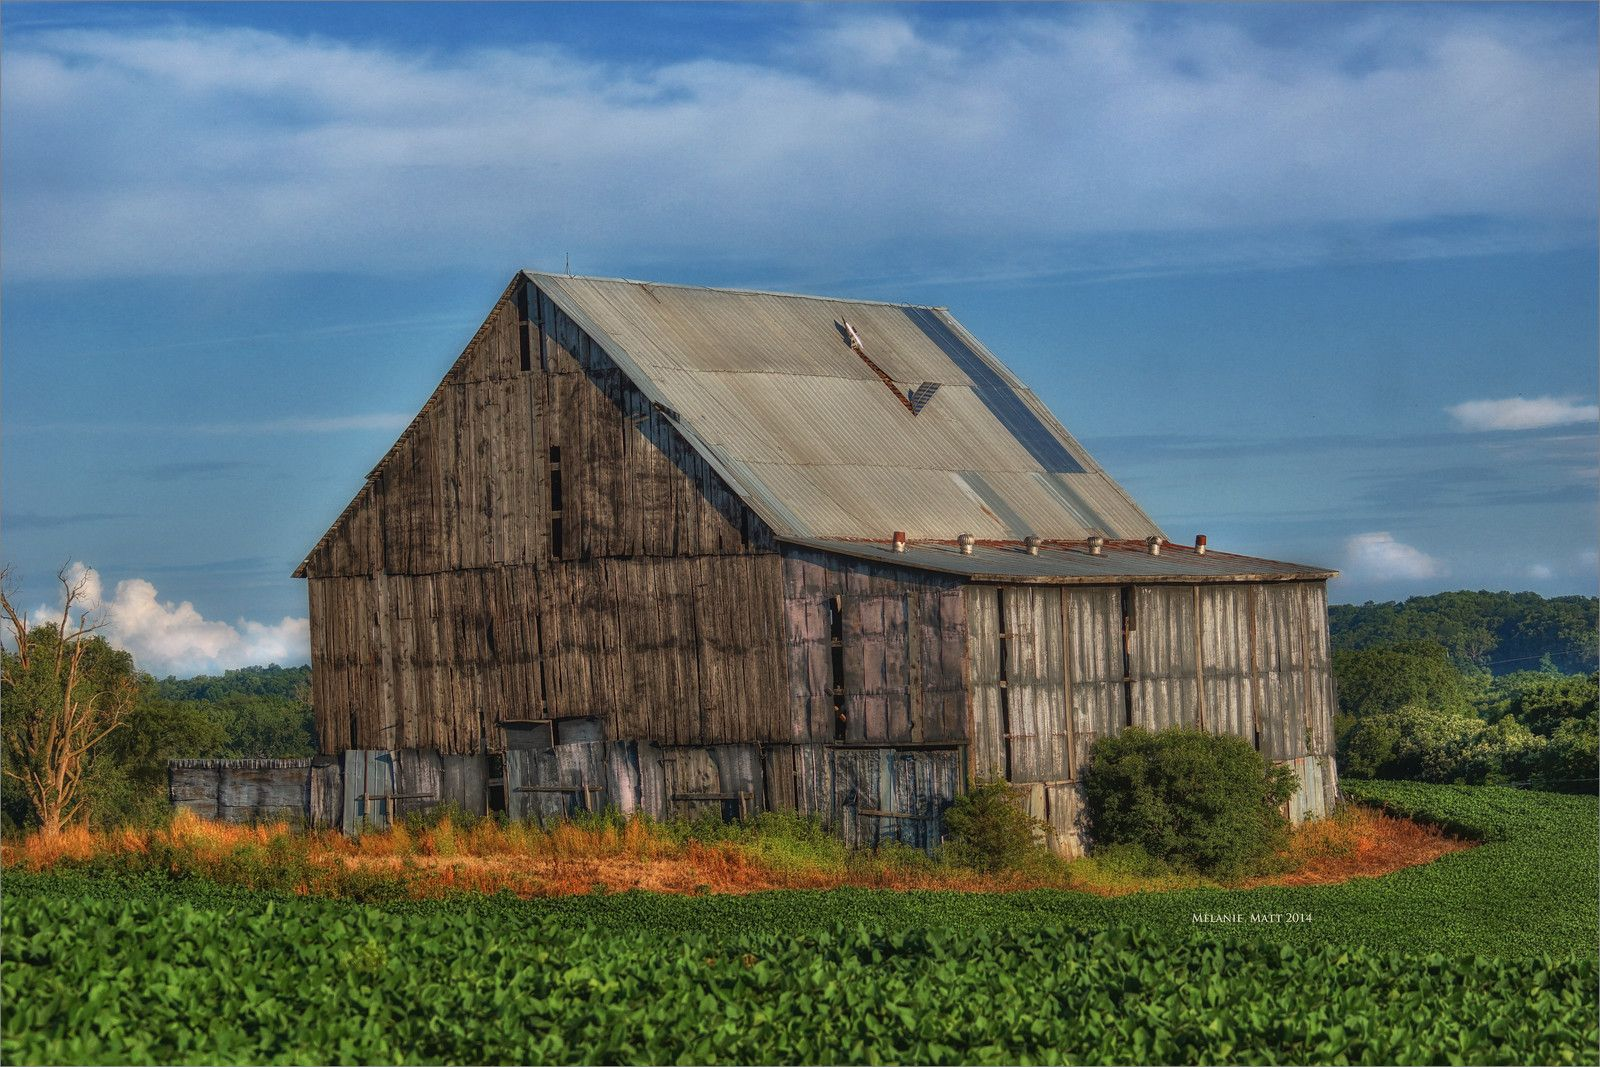 Tobacco Barn near Weston, MO